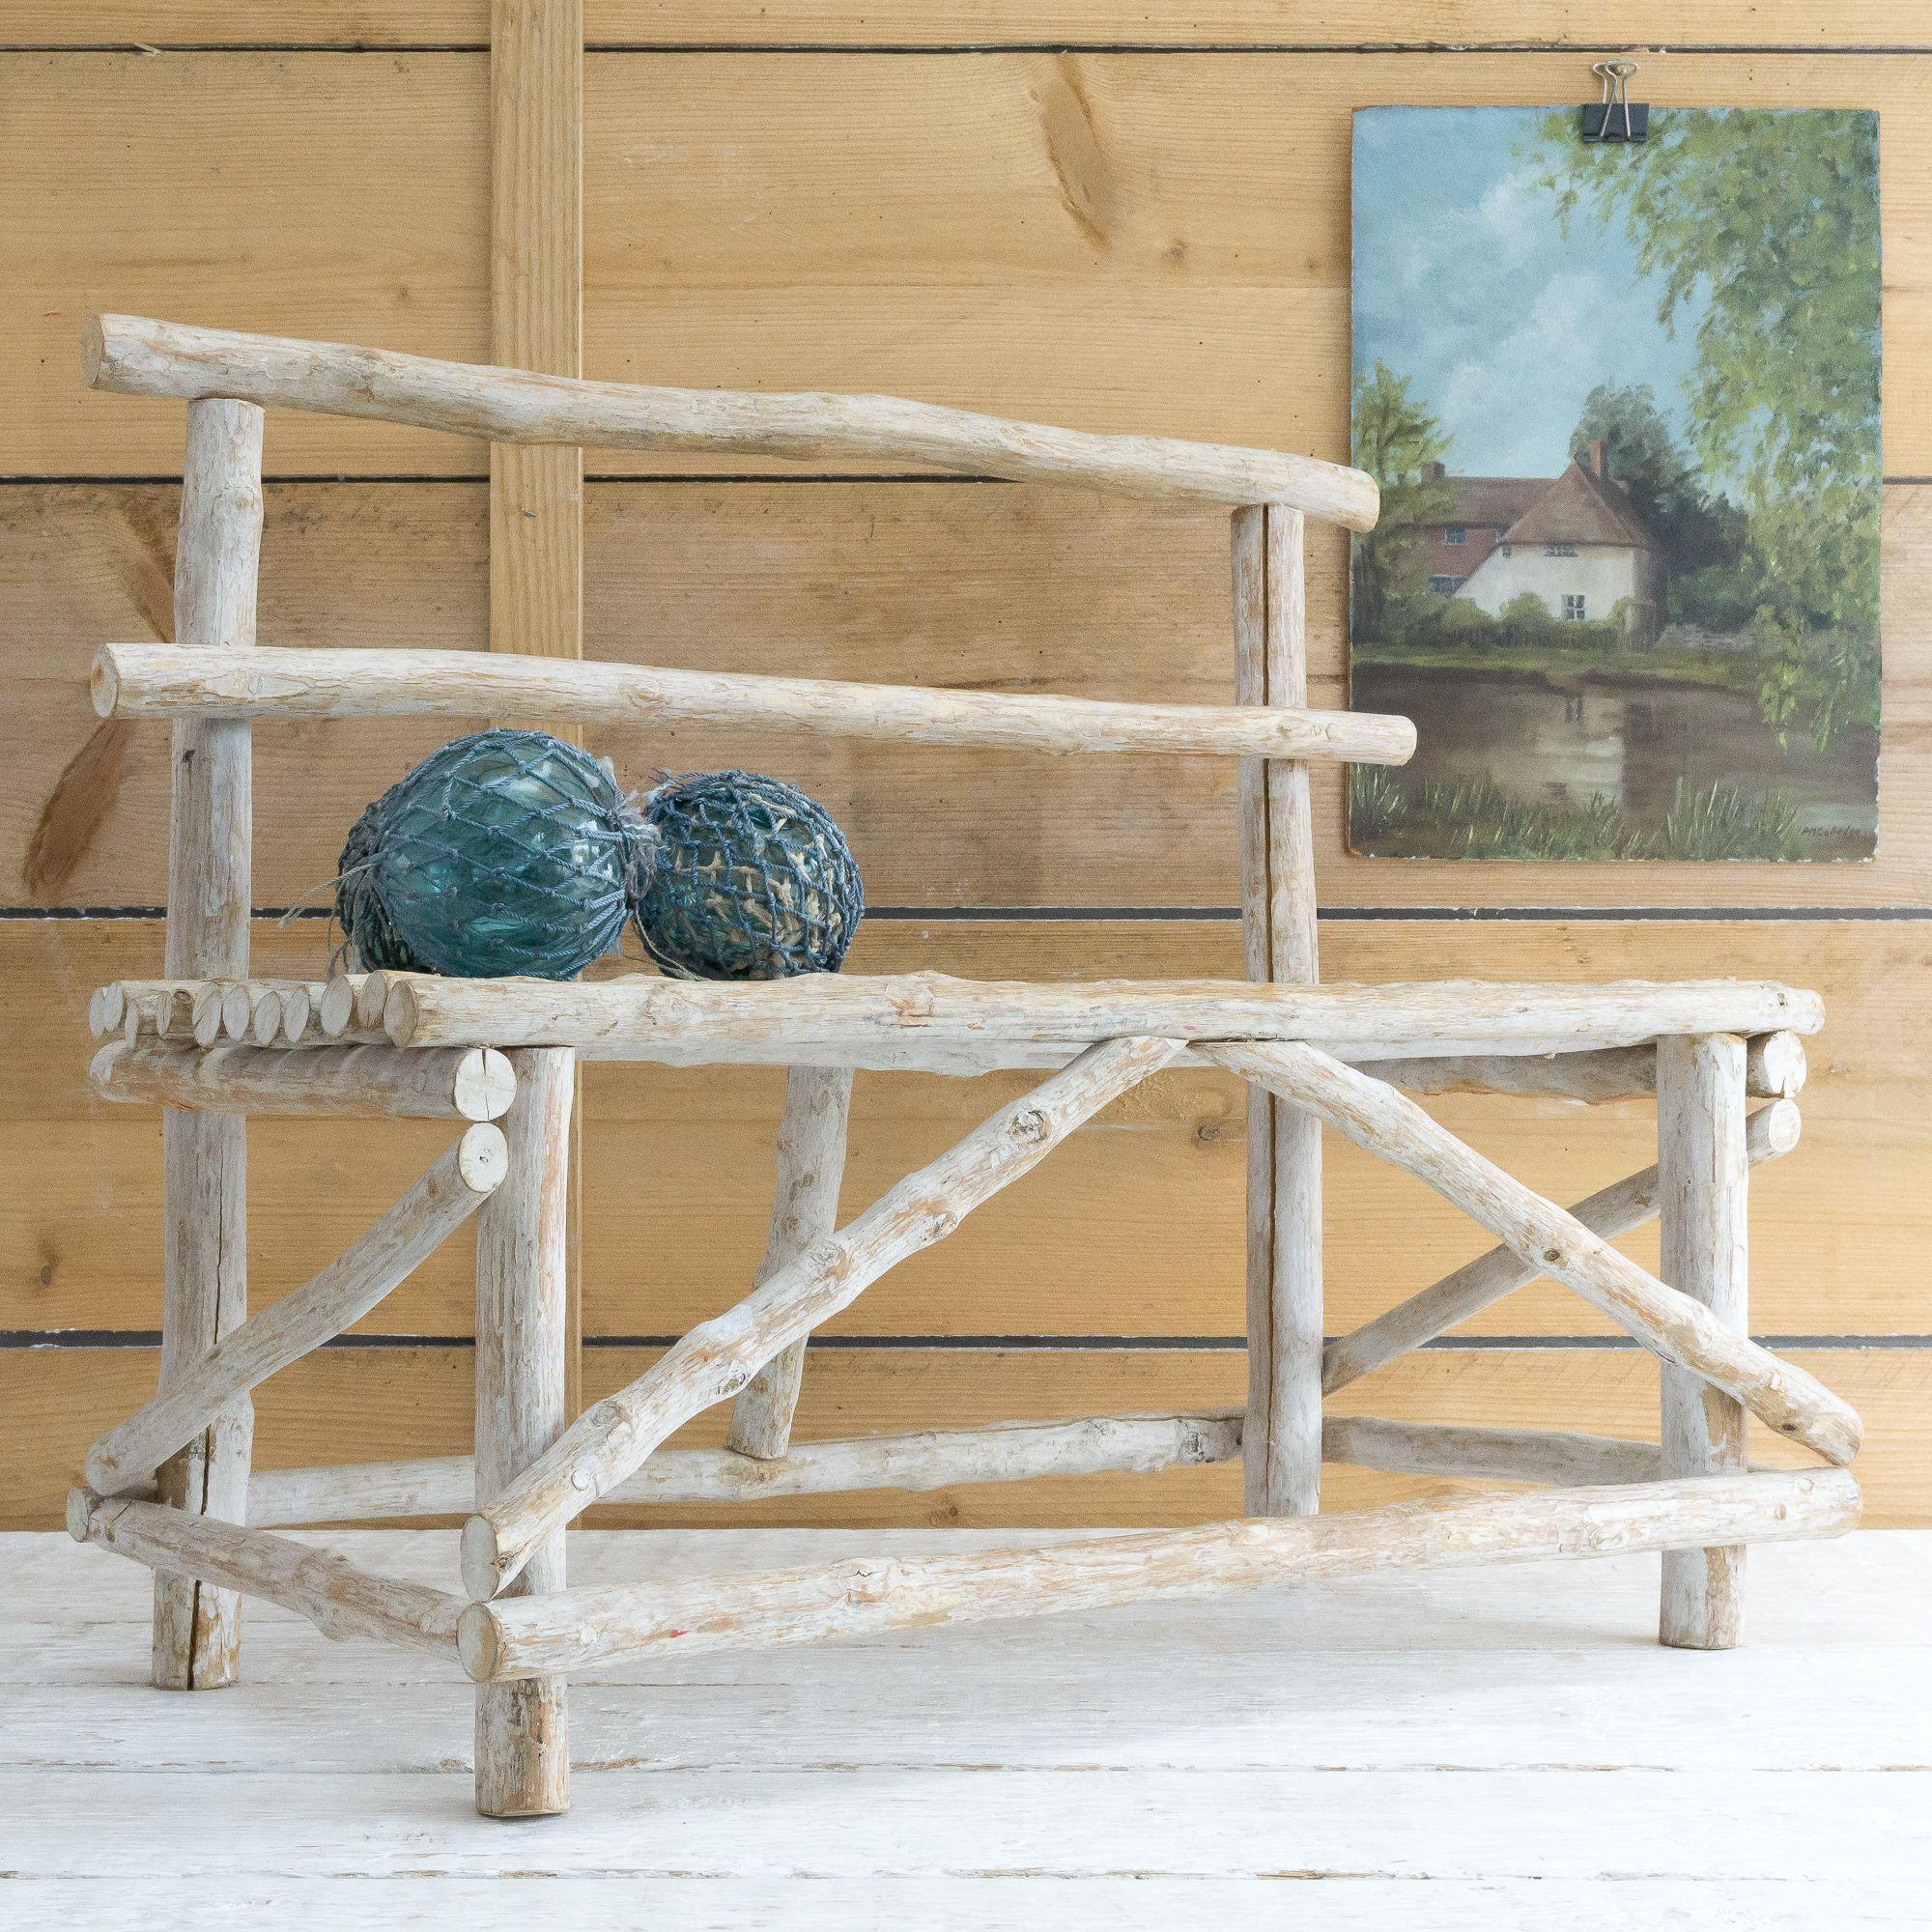 We love this cute little bench made simply of white washed wooden